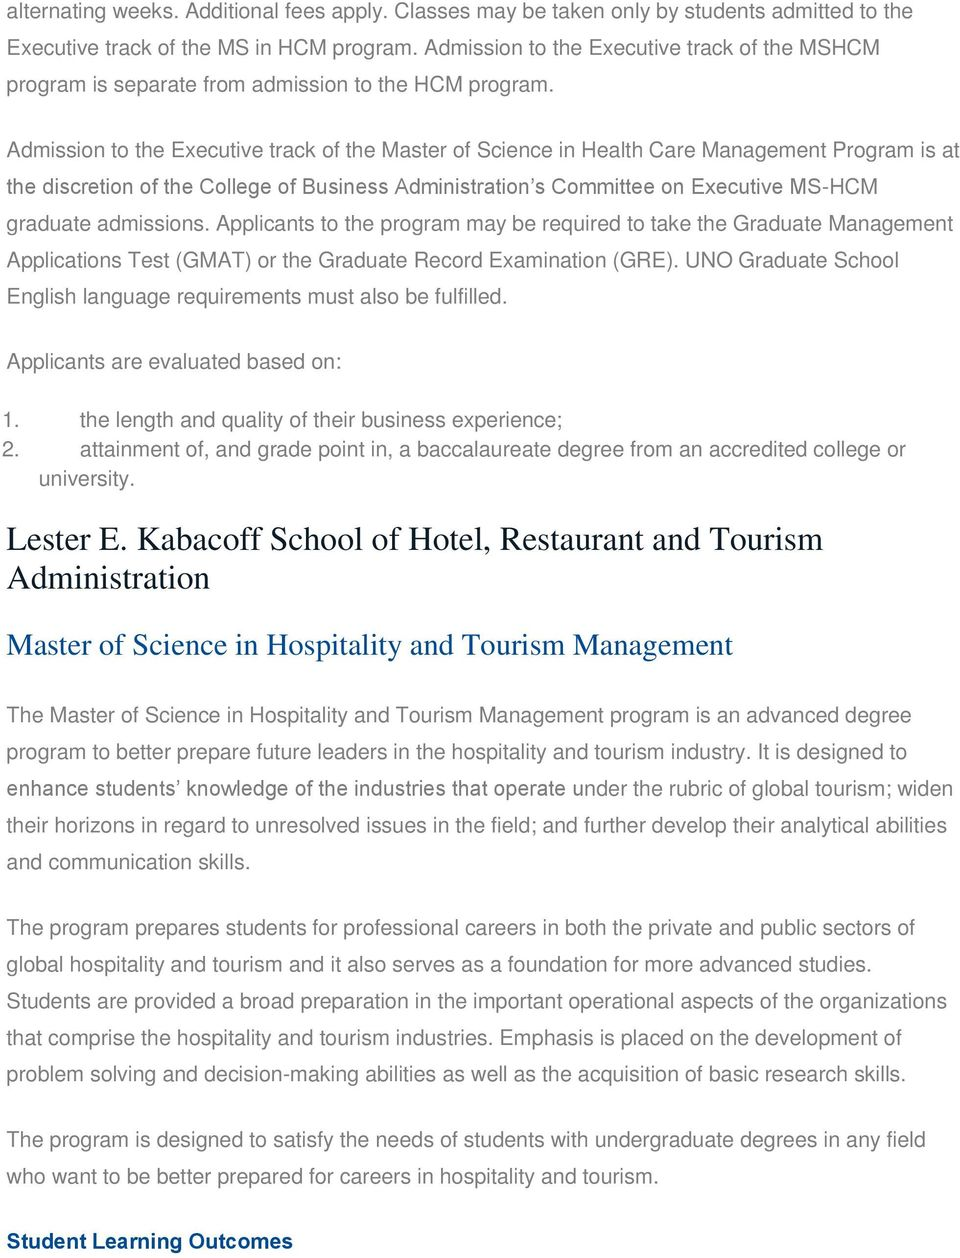 Admission to the Executive track of the Master of Science in Health Care Management Program is at the discretion of the College of Business Administration s Committee on Executive MS-HCM graduate